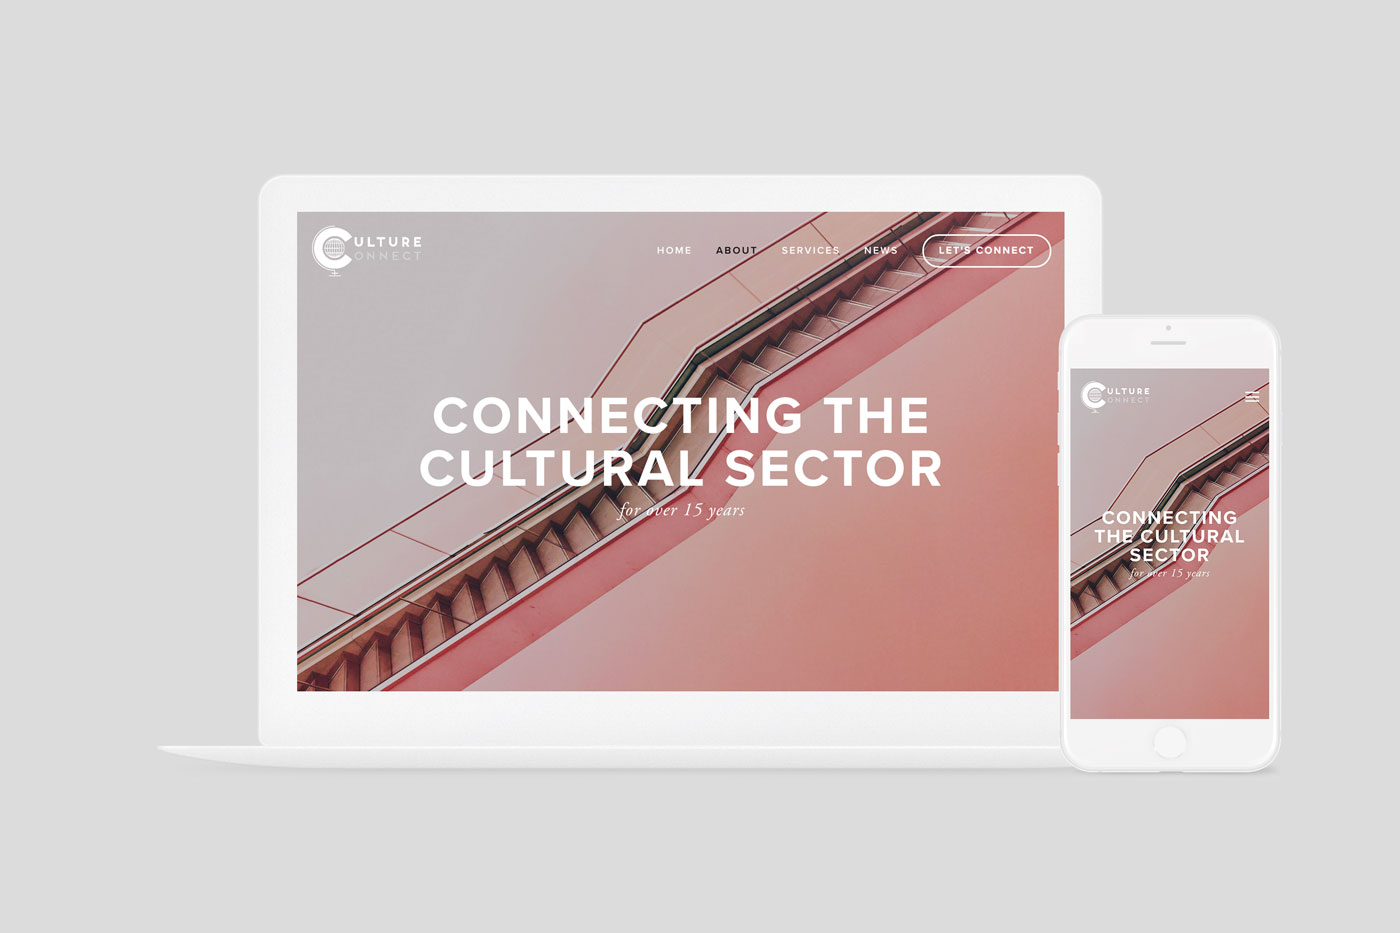 Culture-connect2.jpg